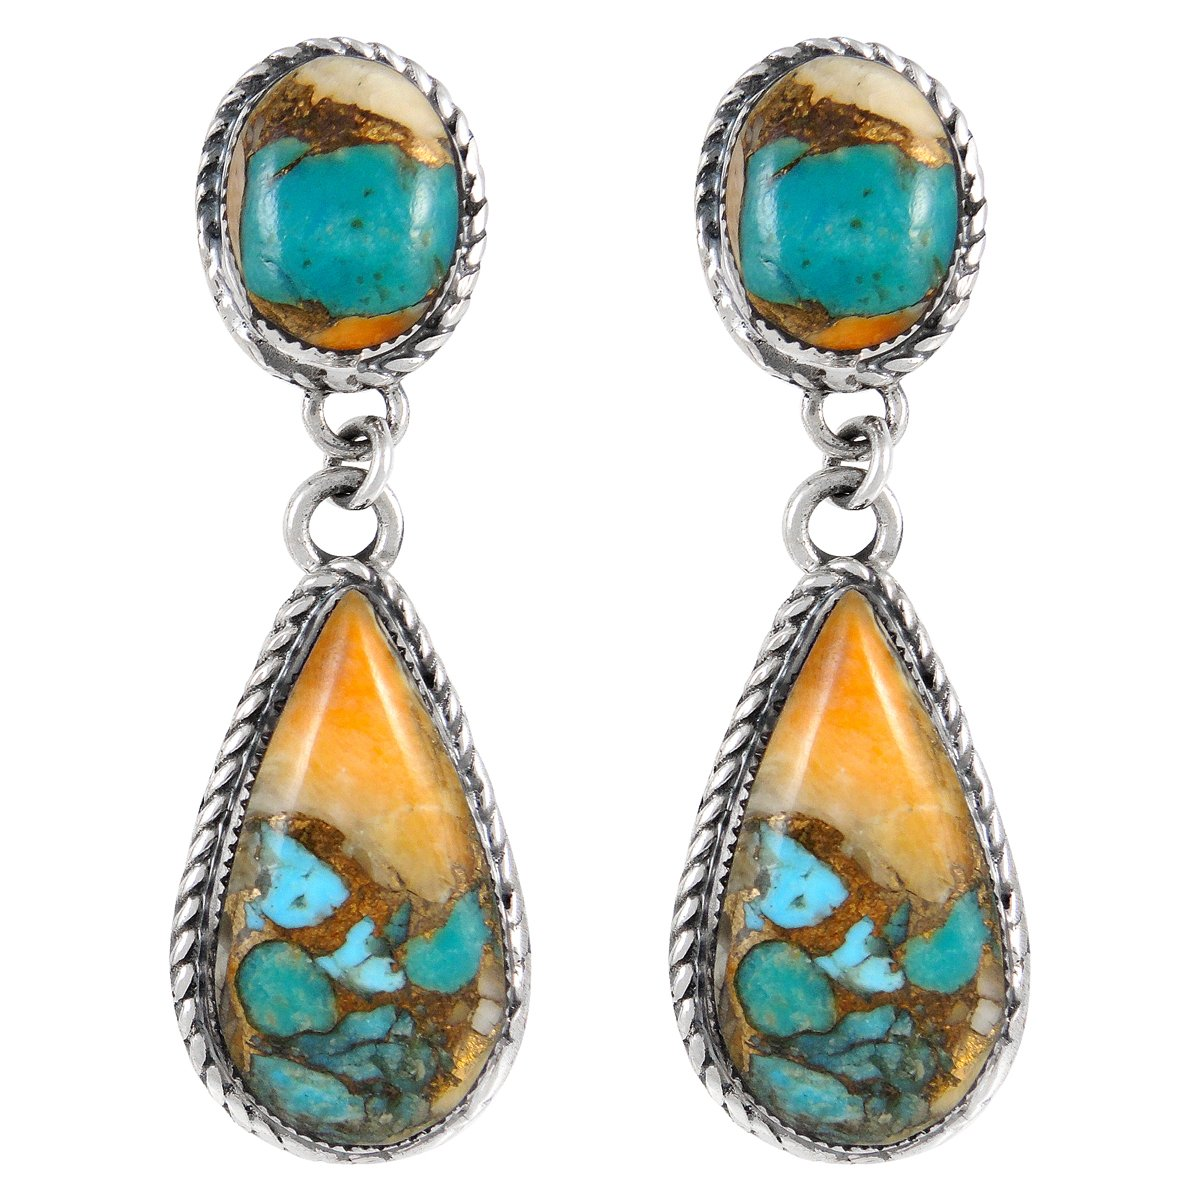 Spiny Oyster Turquoise Earrings in 925 Sterling Silver (Select style) (Western Teardrops)